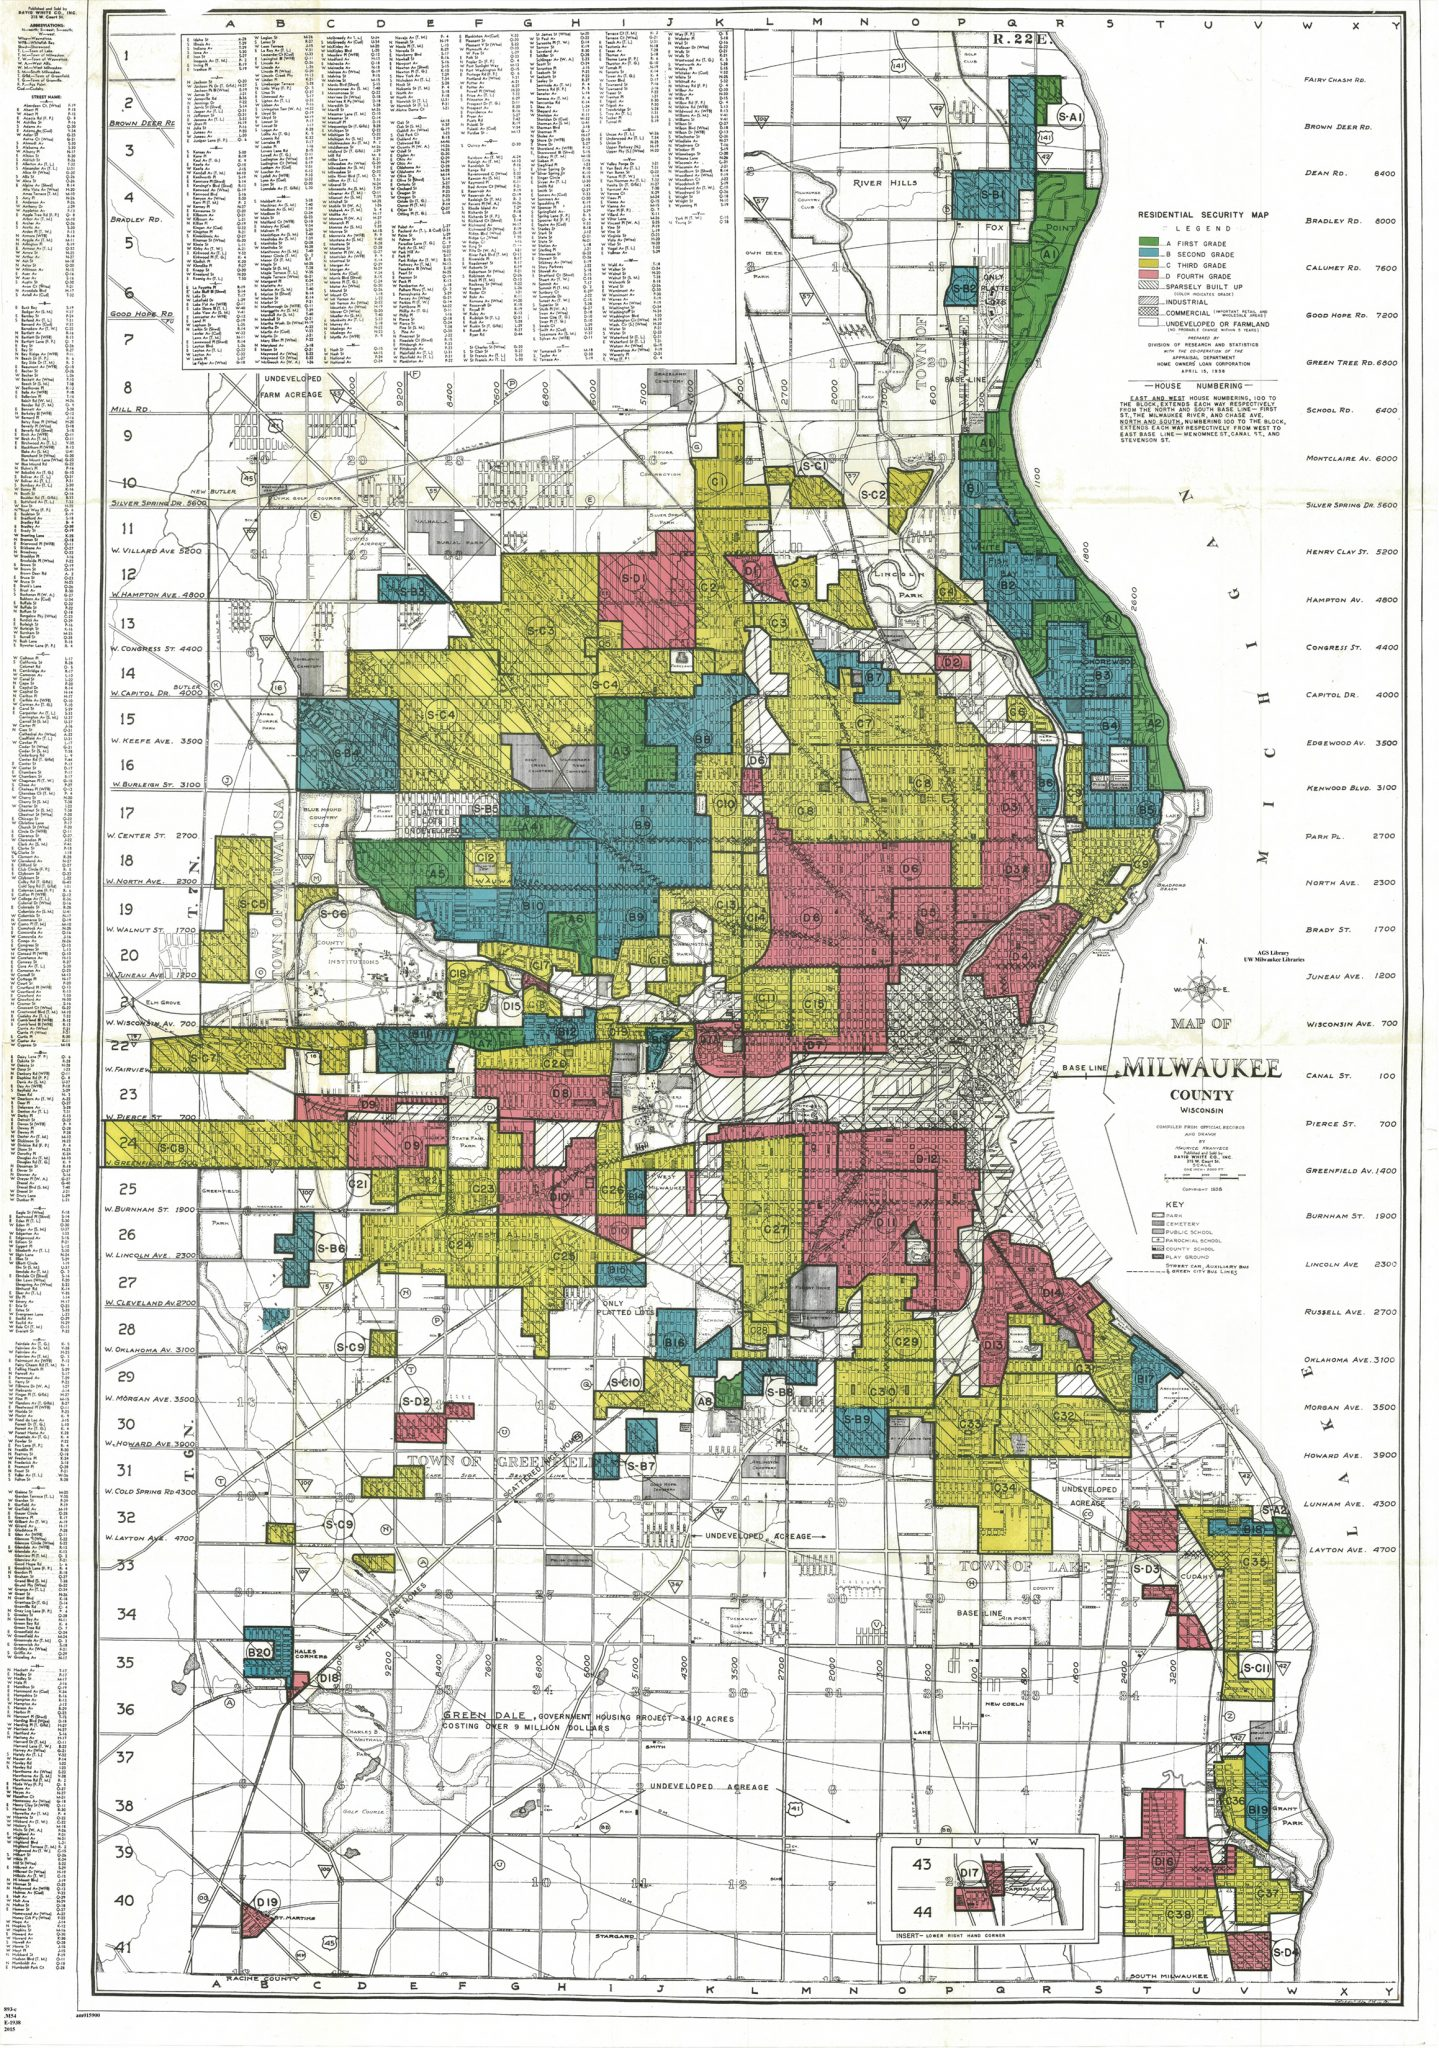 1938 Residential Security Map of Milwaukee